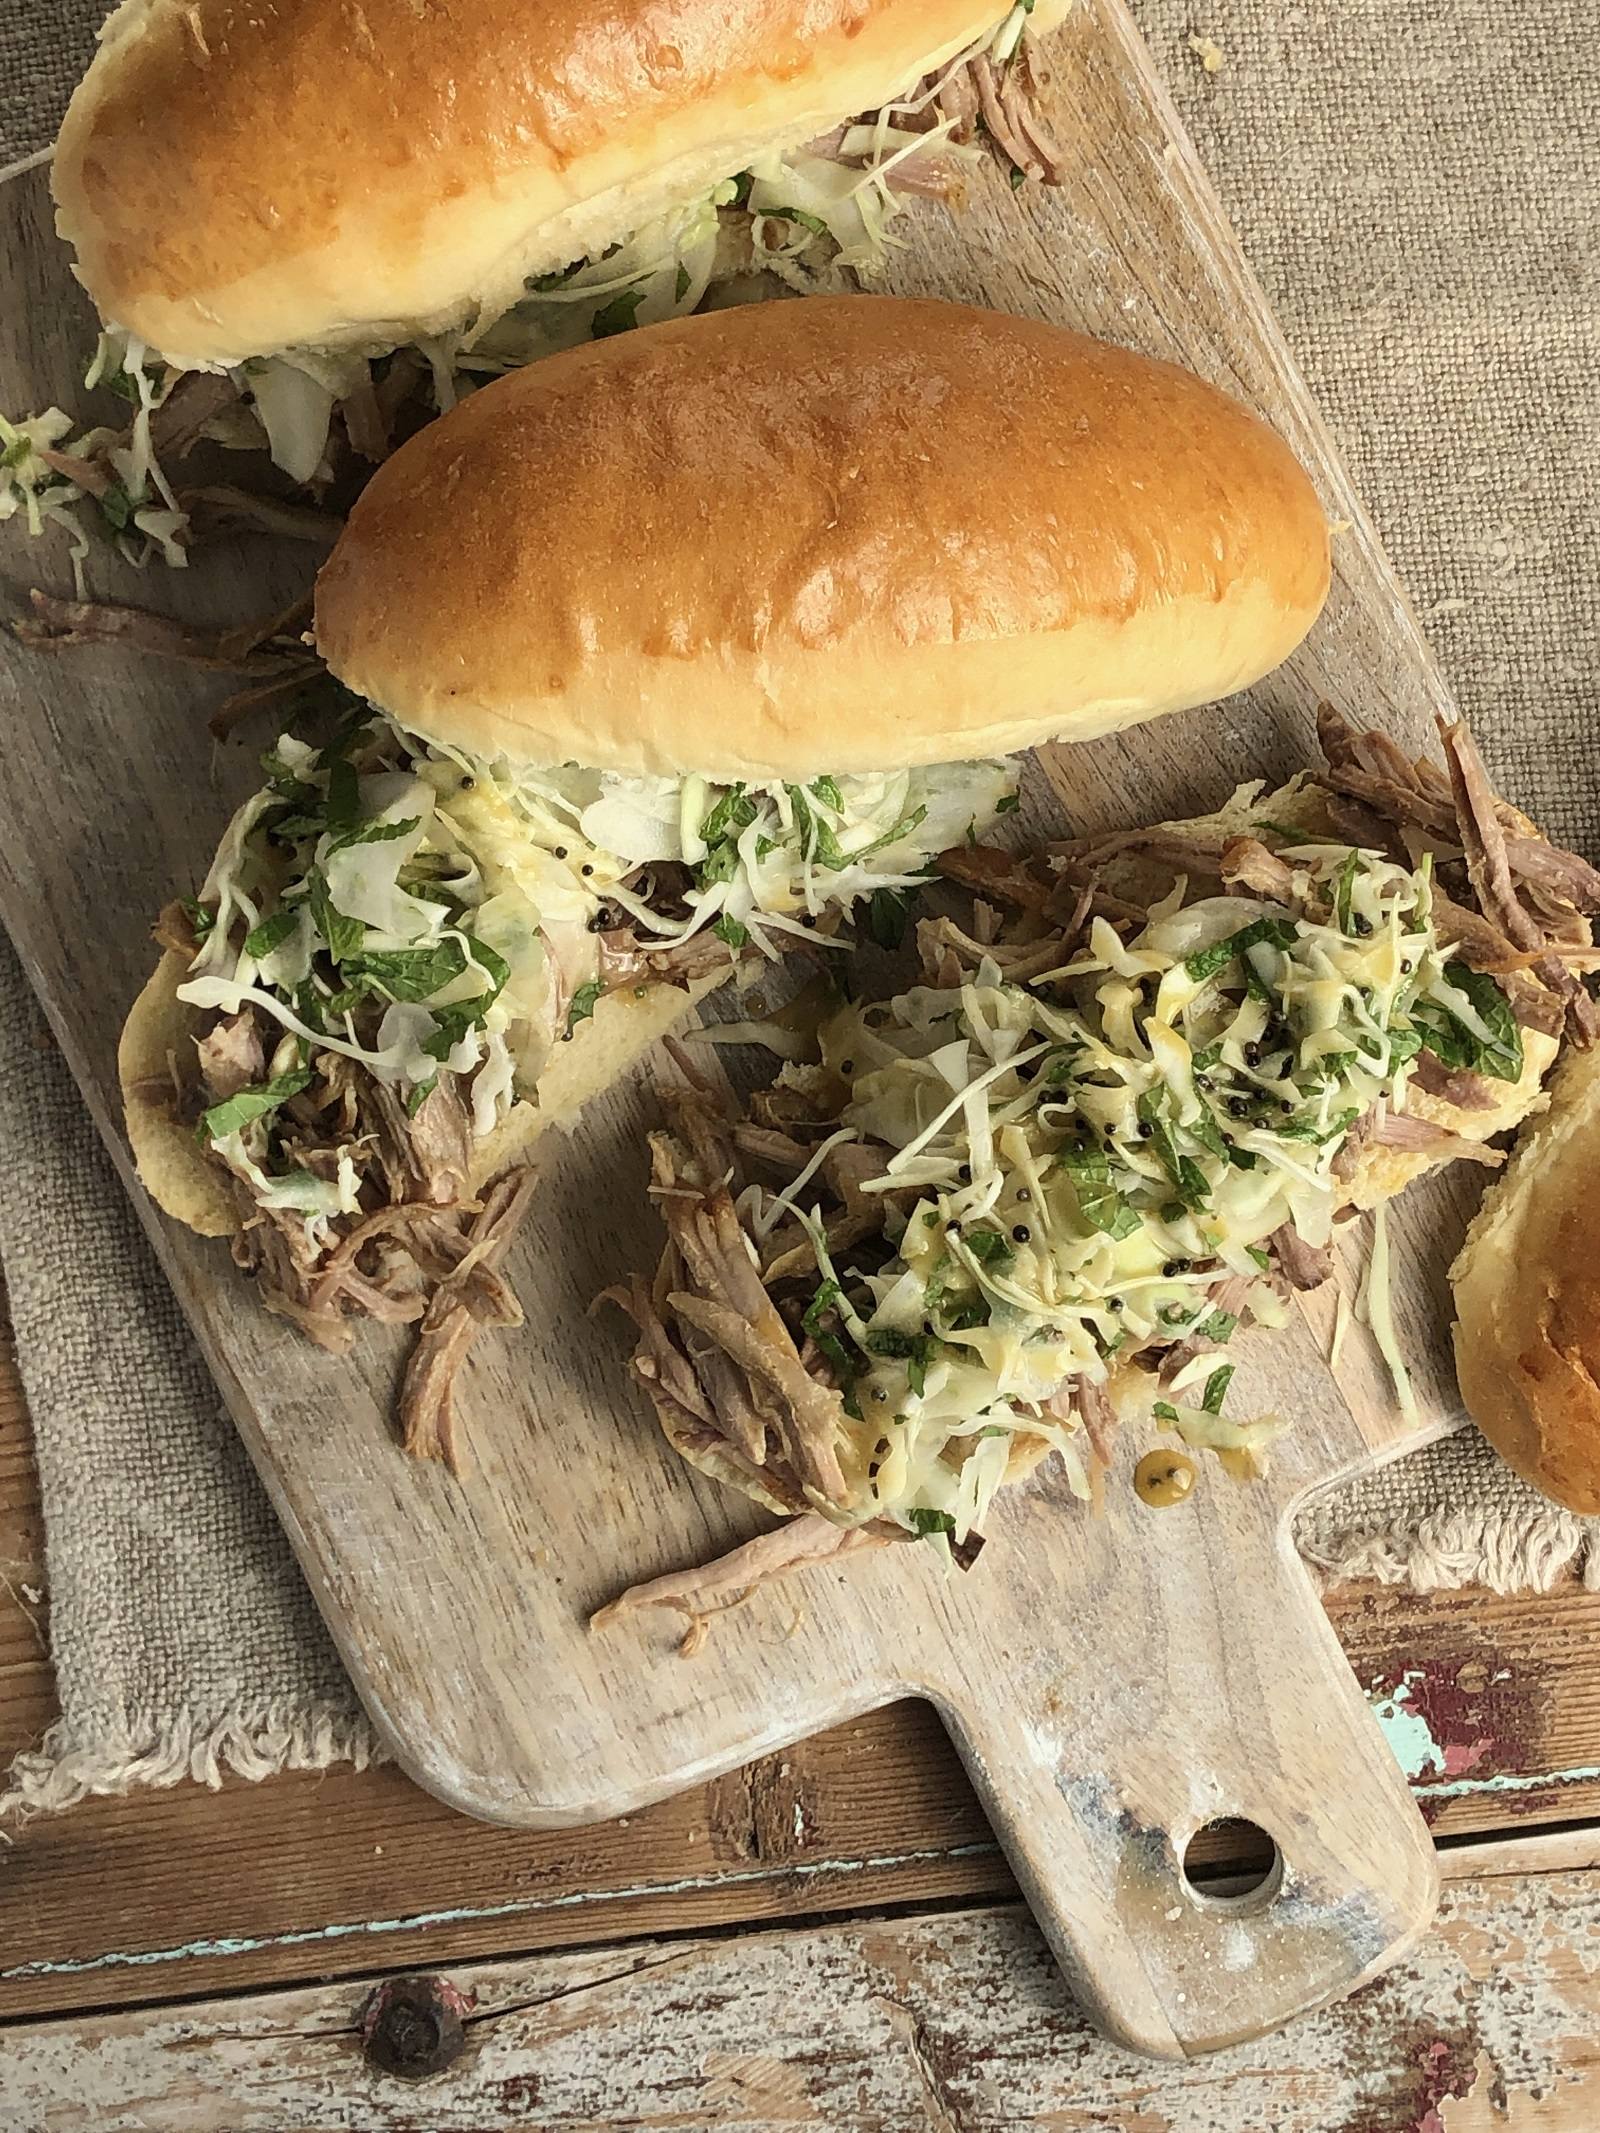 Brined and spiced roast pork shoulder cooked in cider with fennel and cabbage slaw